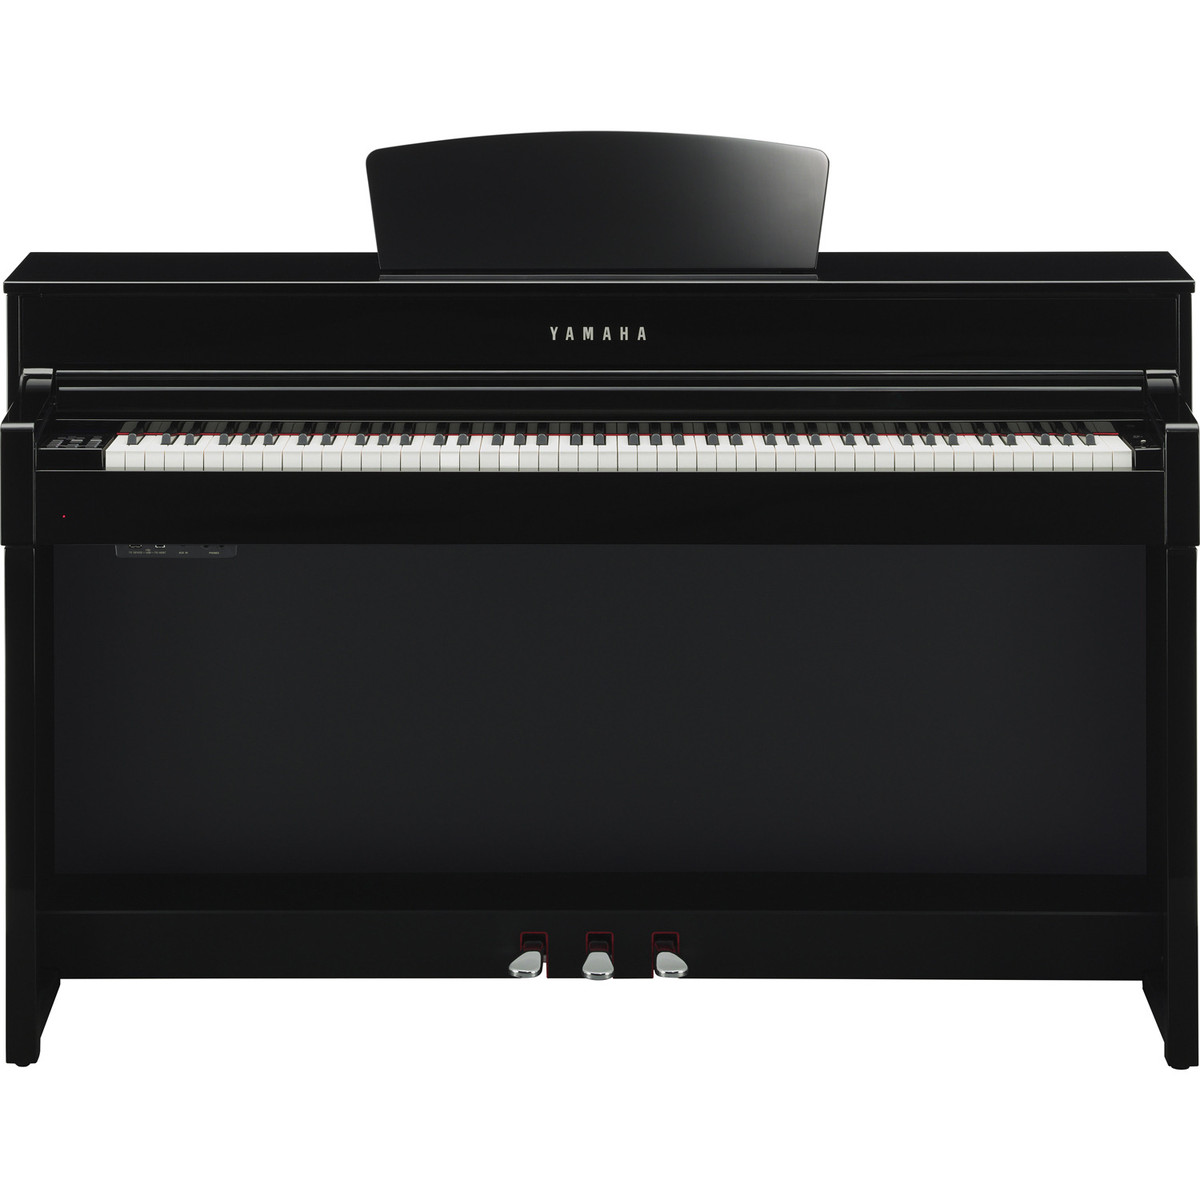 Yamaha clavinova clp535 digital piano polished ebony at for Yamaha piano com